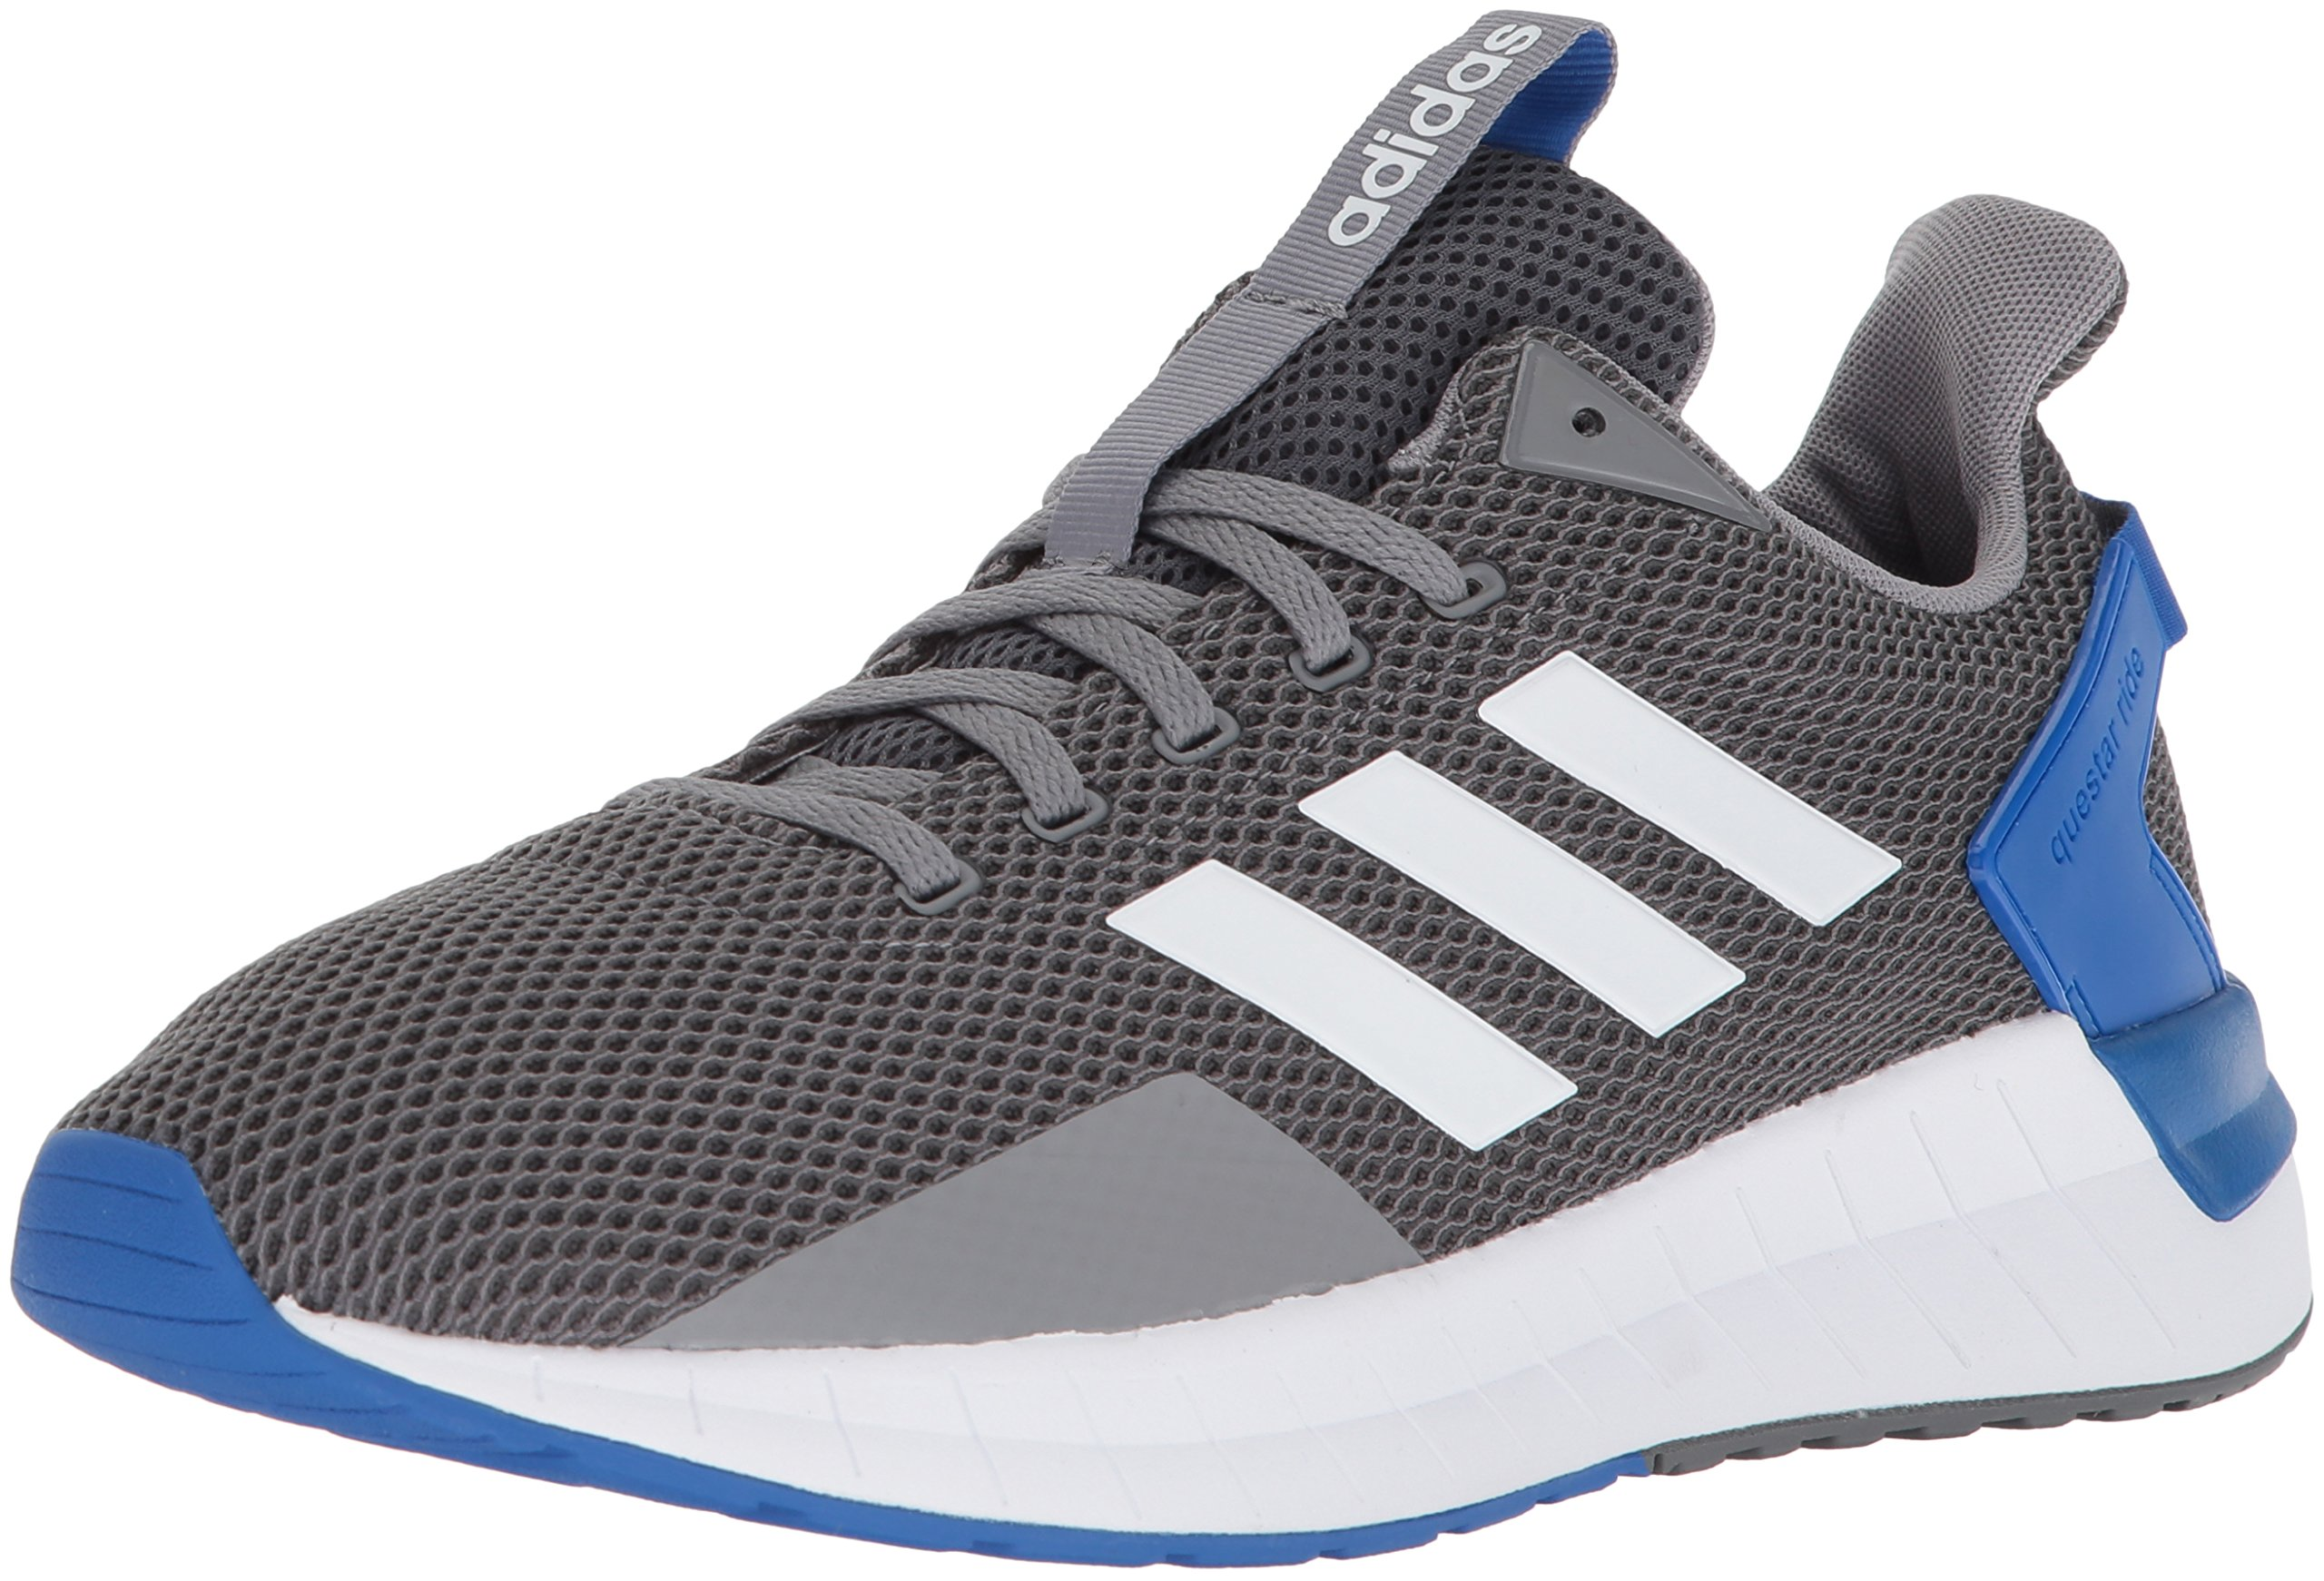 low priced f6ba7 d4921 Galleon - Adidas Mens Questar Ride Running Shoe, Grey ThreeWhiteGrey  Four, 8 M US